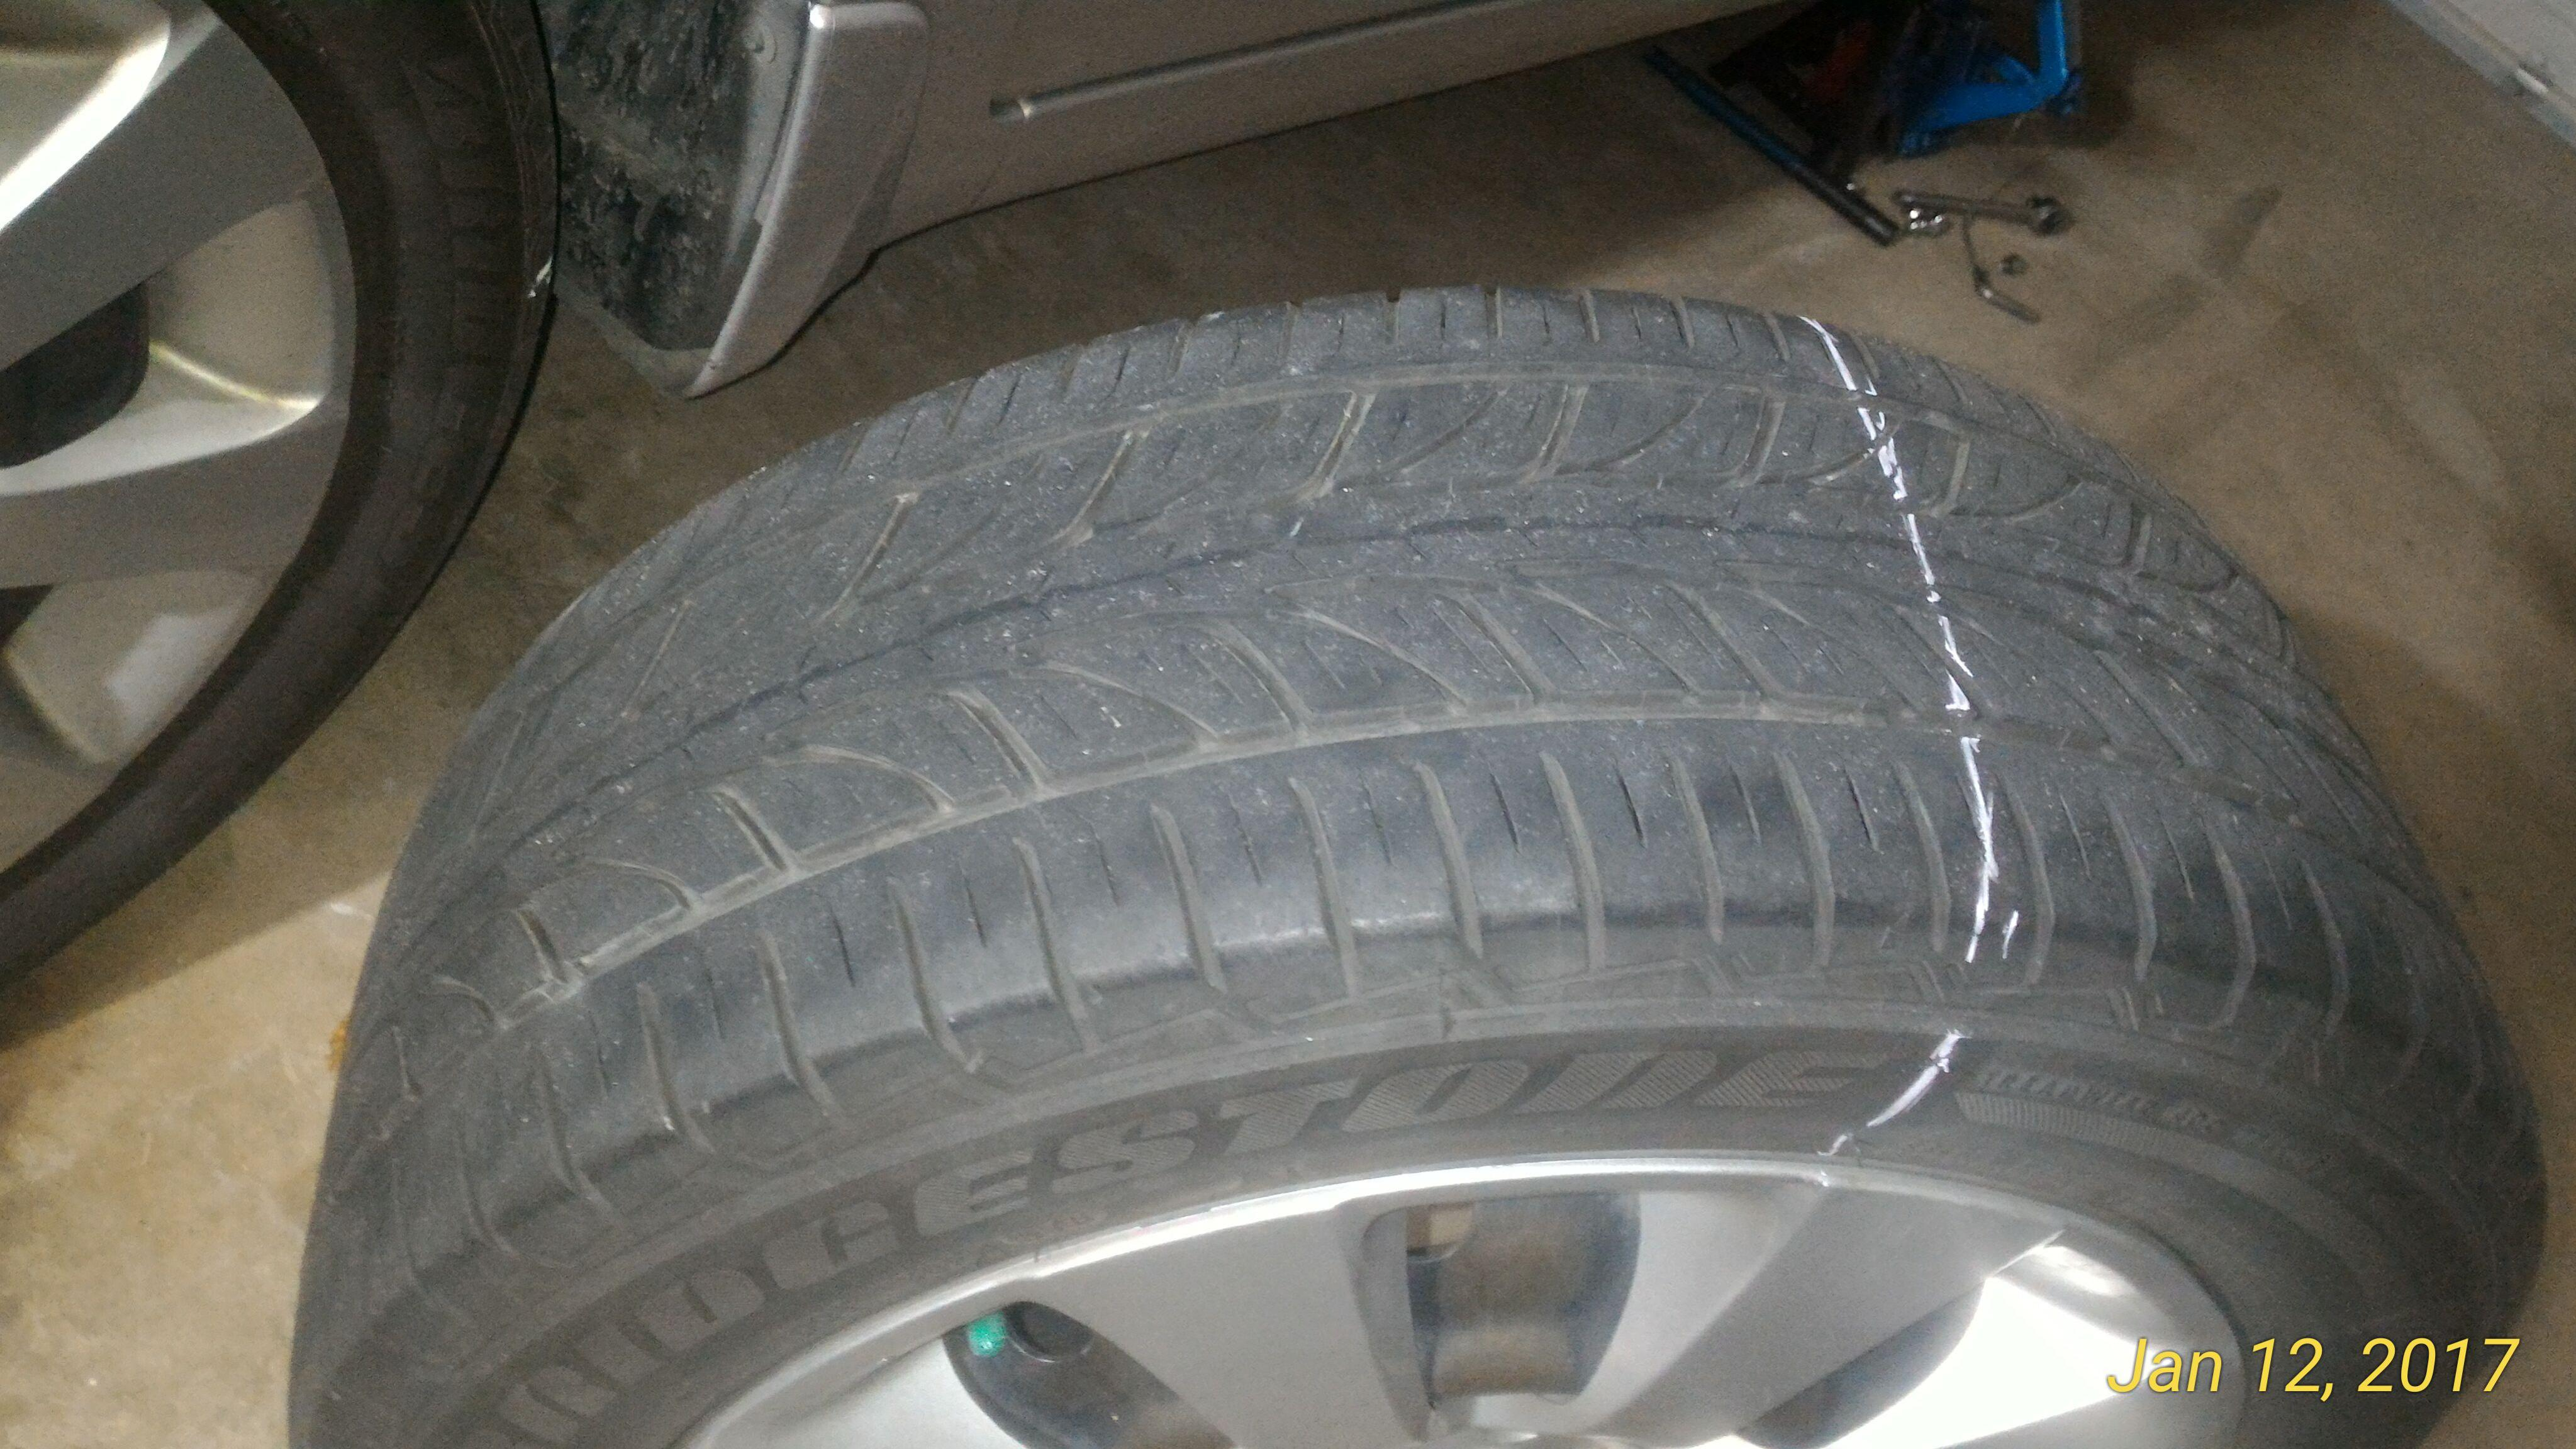 Tire Cupping Wear Indentification Help - Subaru Outback ...